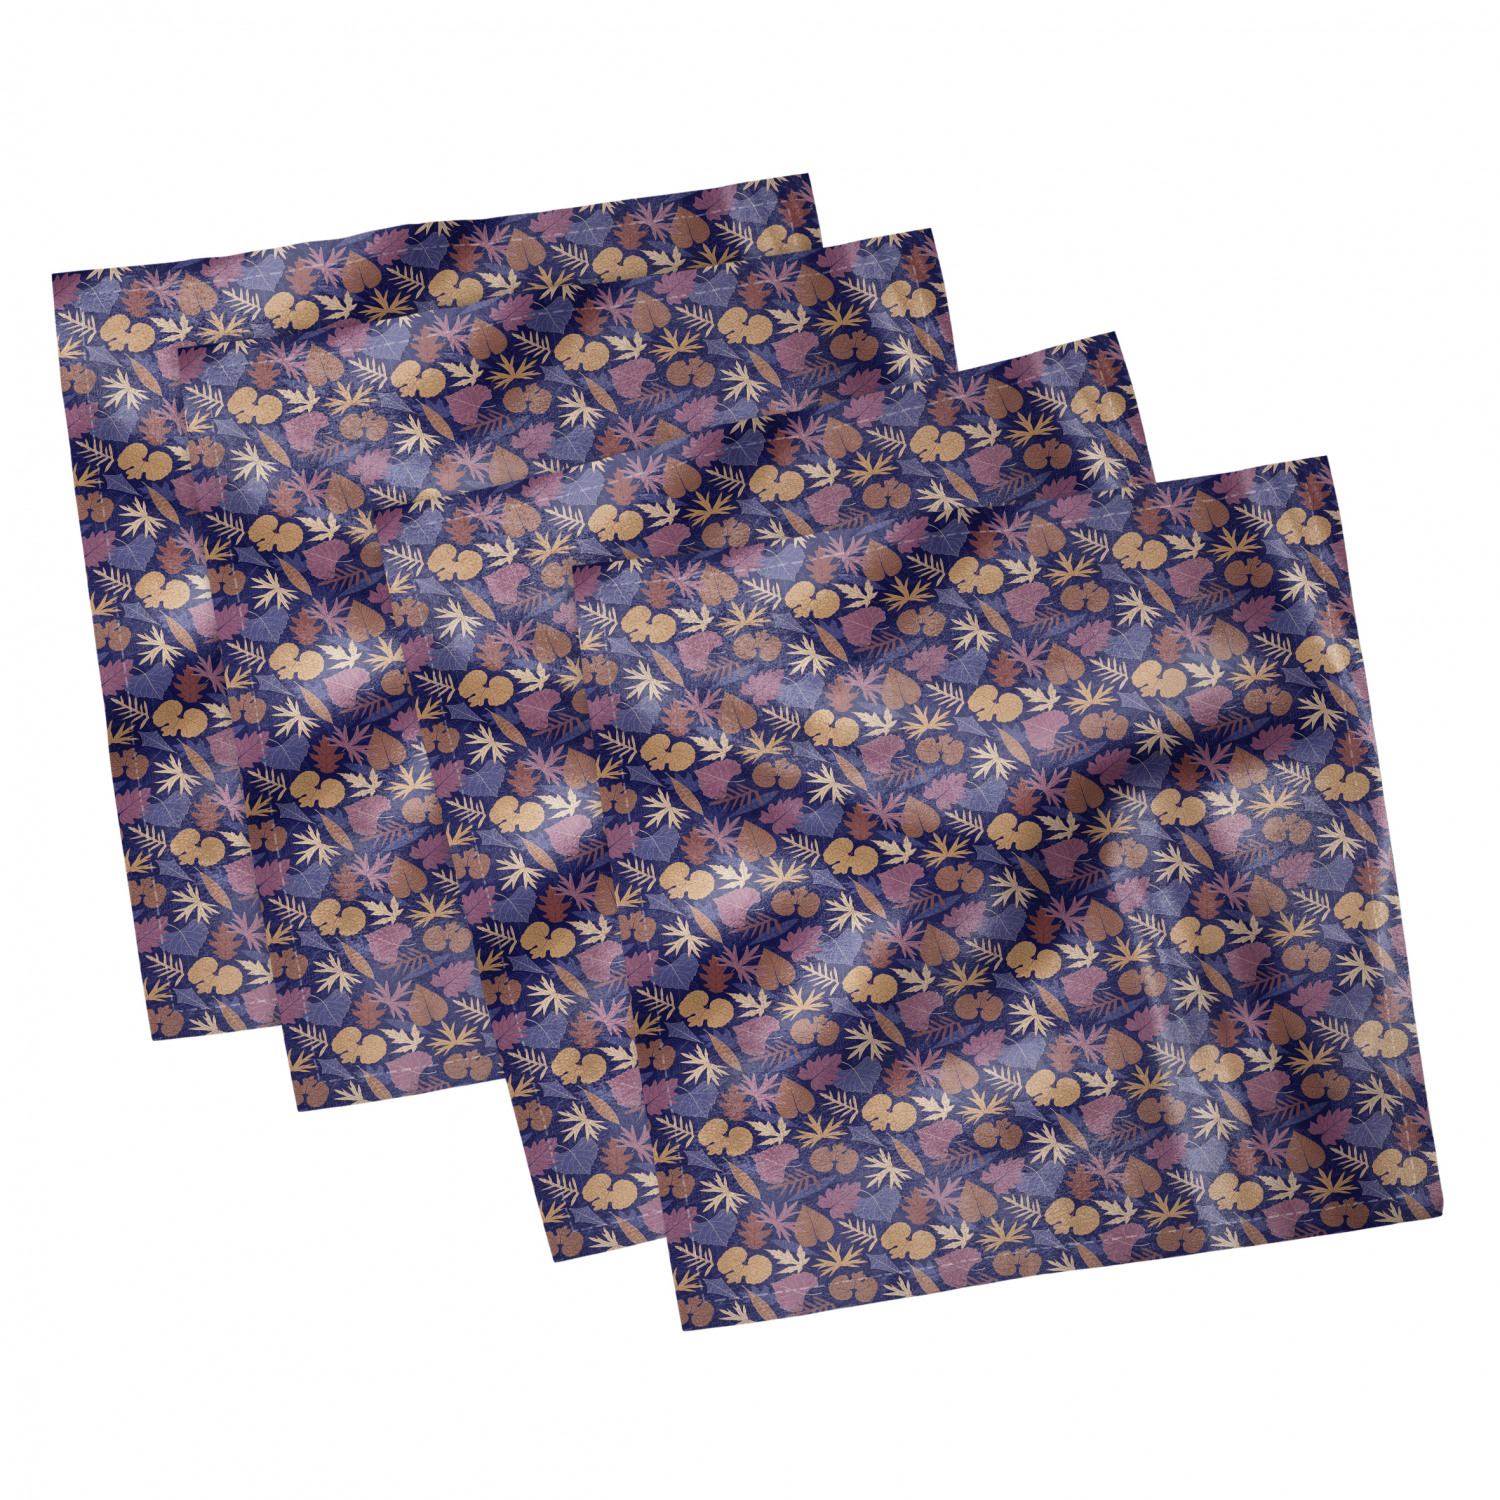 thumbnail 59 - Ambesonne-Autumn-Fall-Decorative-Satin-Napkins-Set-of-4-Party-Dinner-Fabric